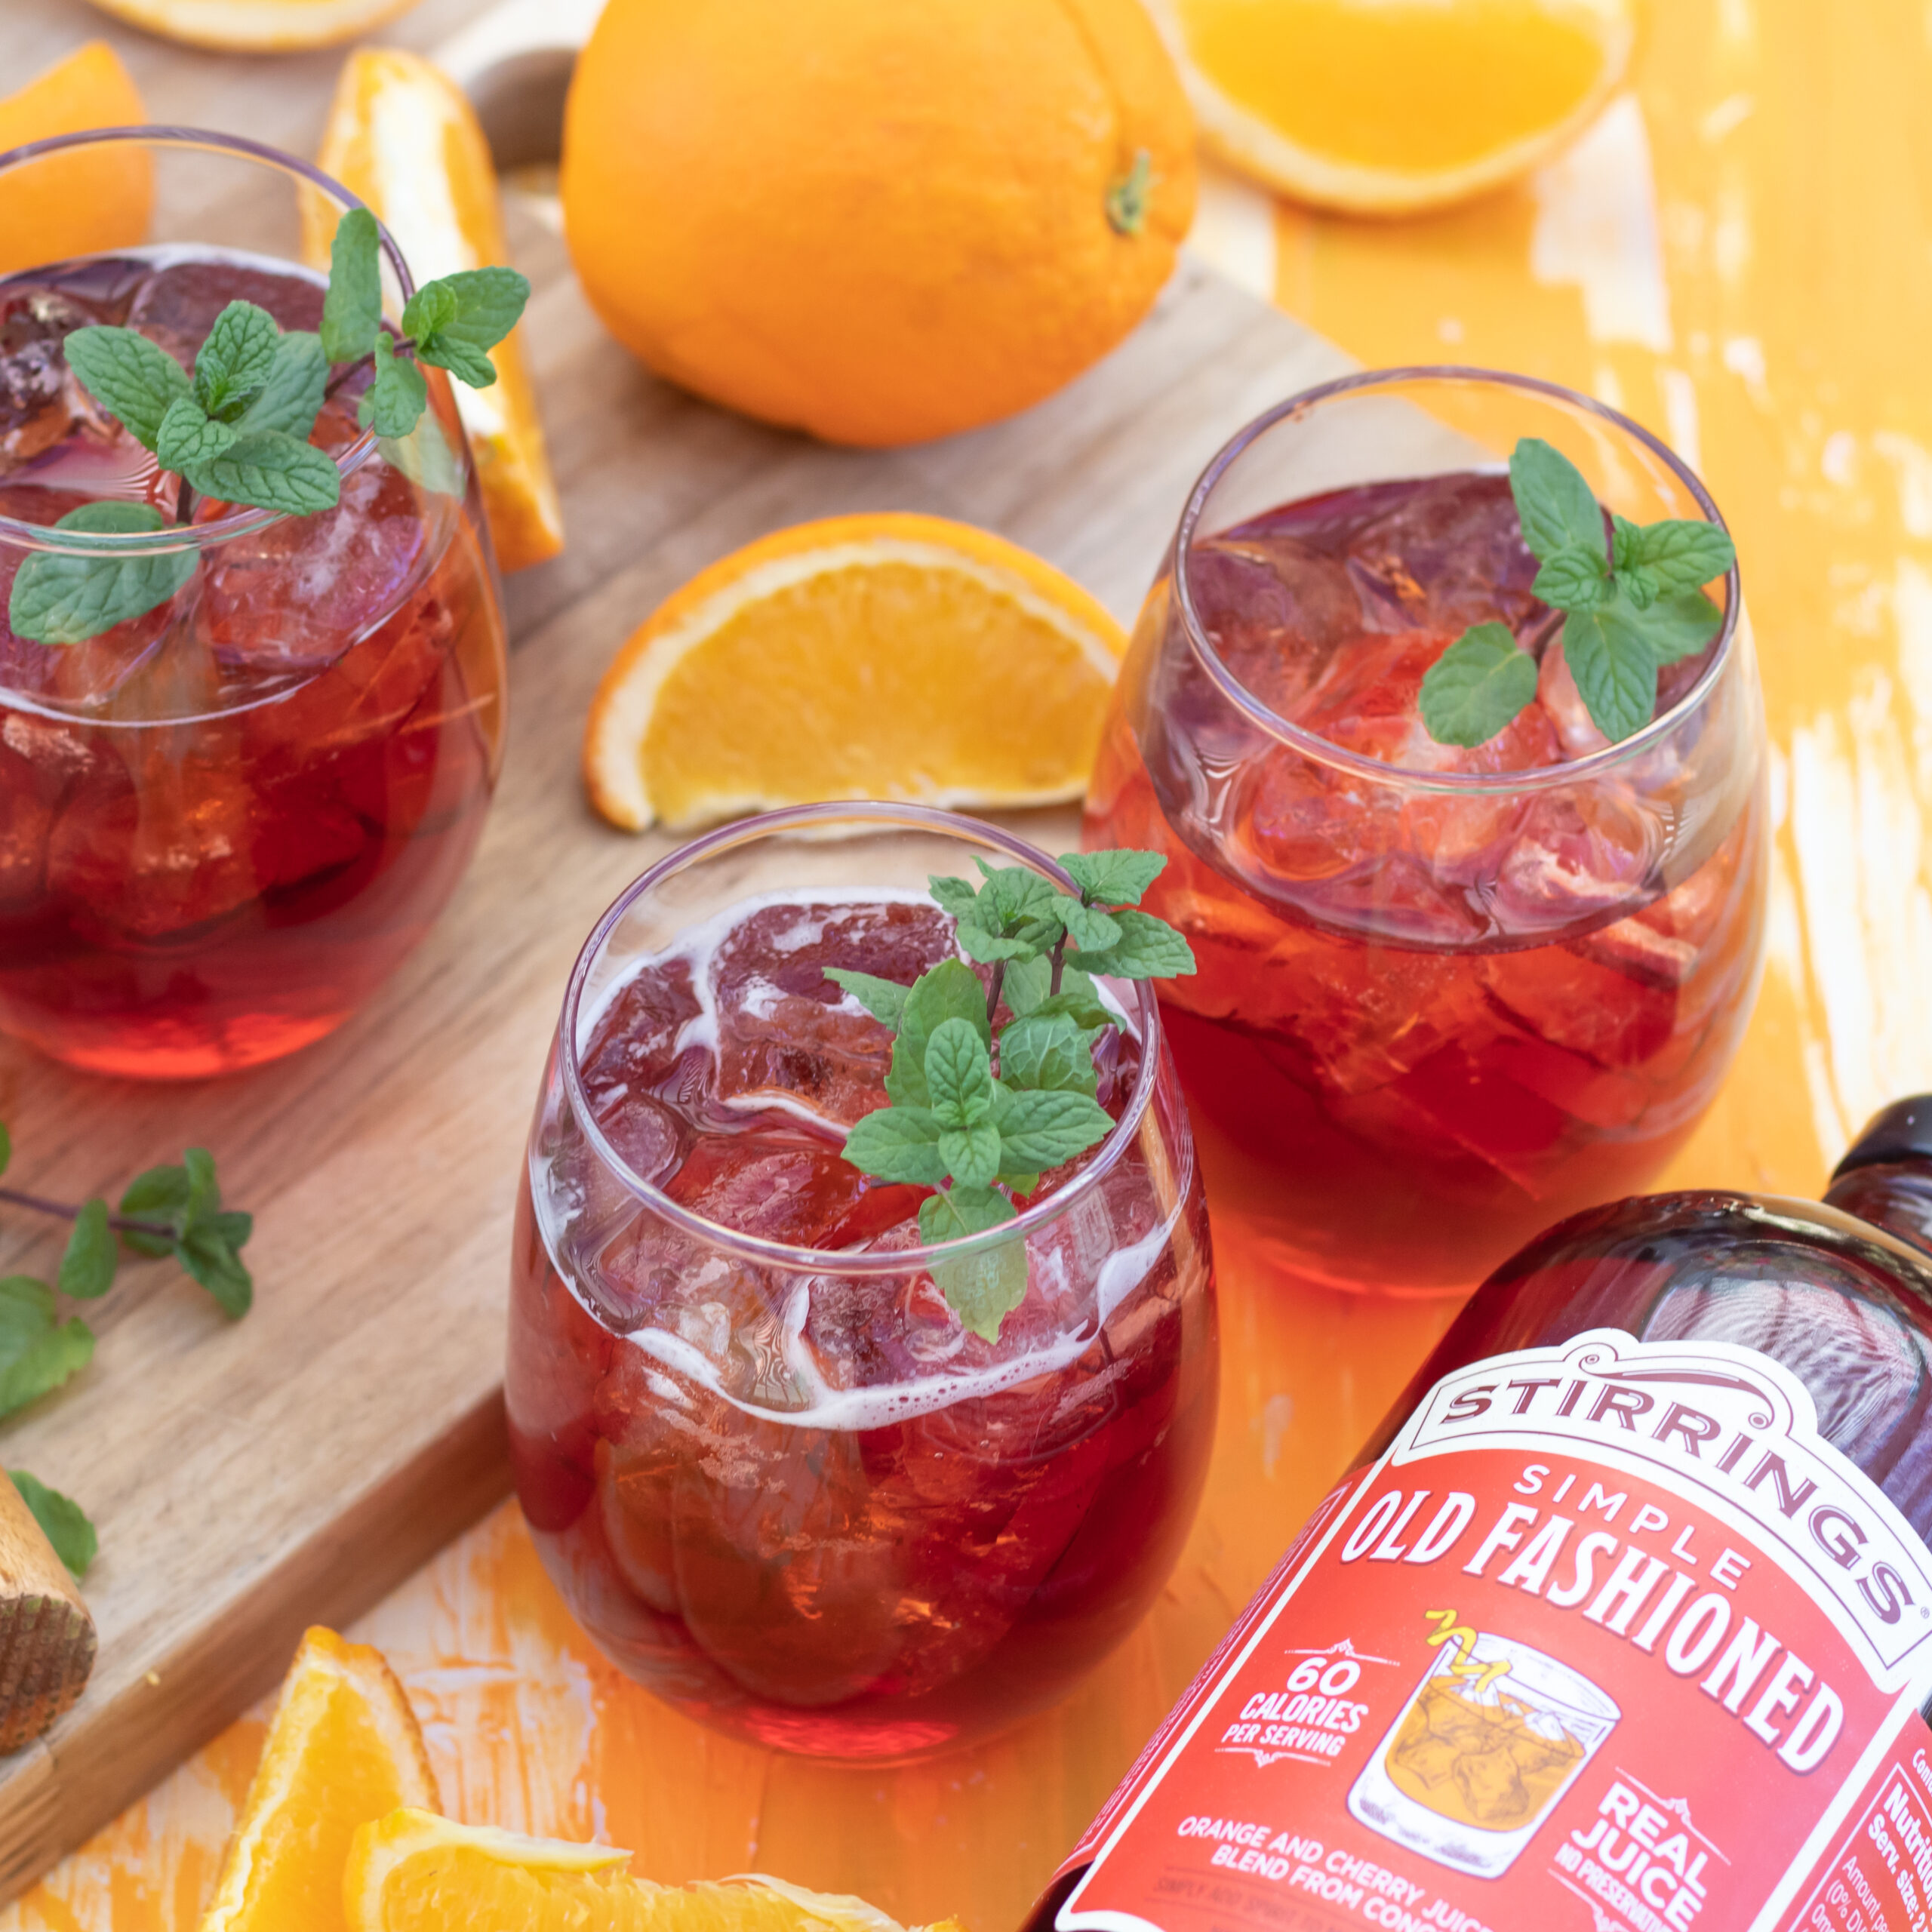 stirrings-old-fashioned-3